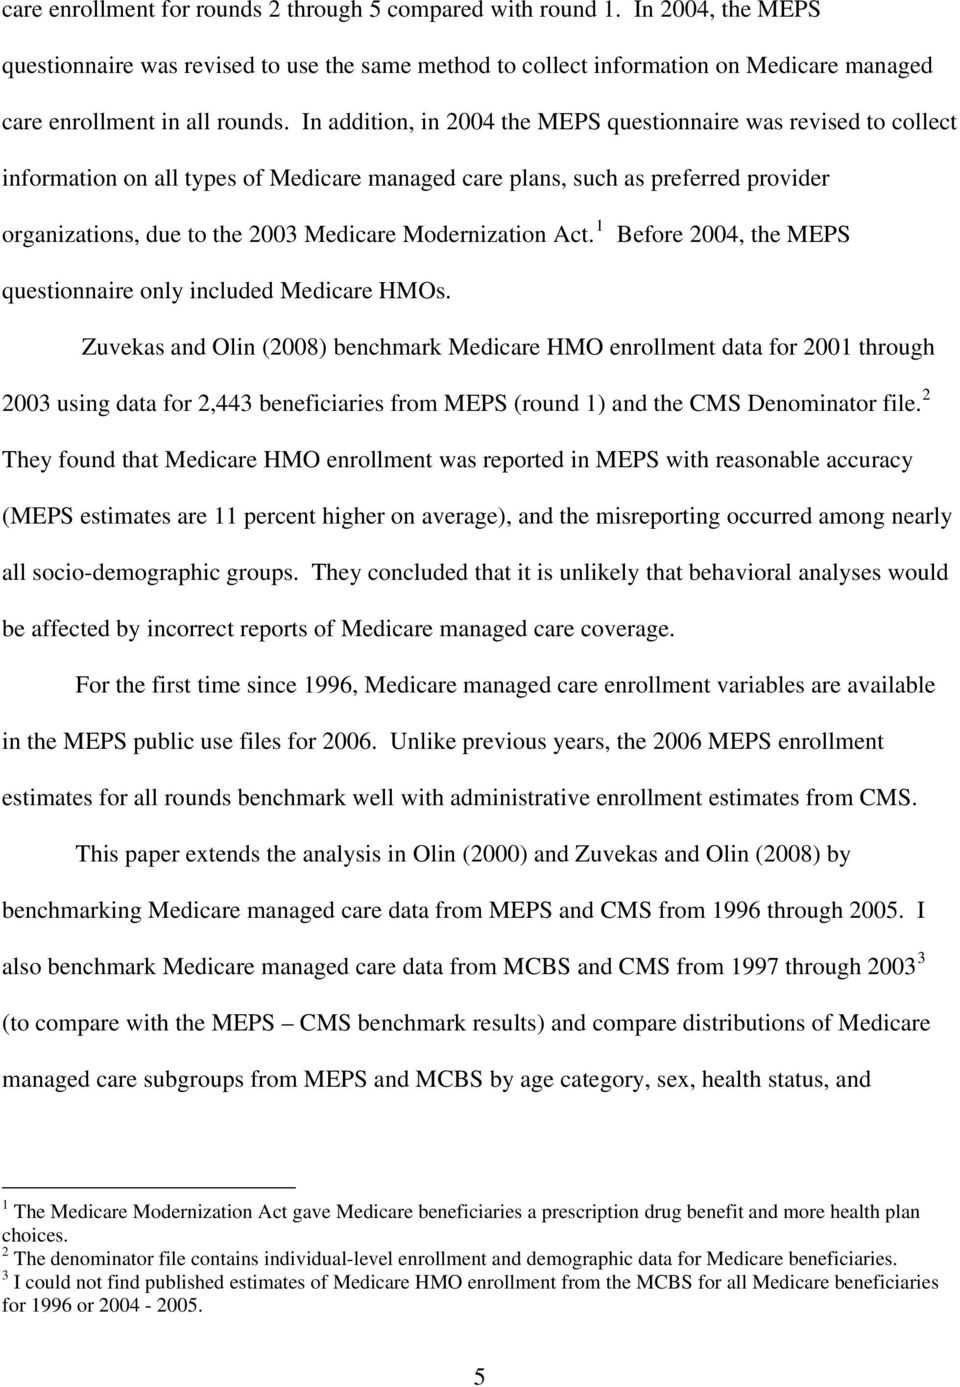 In addition, in 2004 the MEPS questionnaire was revised to collect information on all types of Medicare managed care plans, such as preferred provider organizations, due to the 2003 Medicare